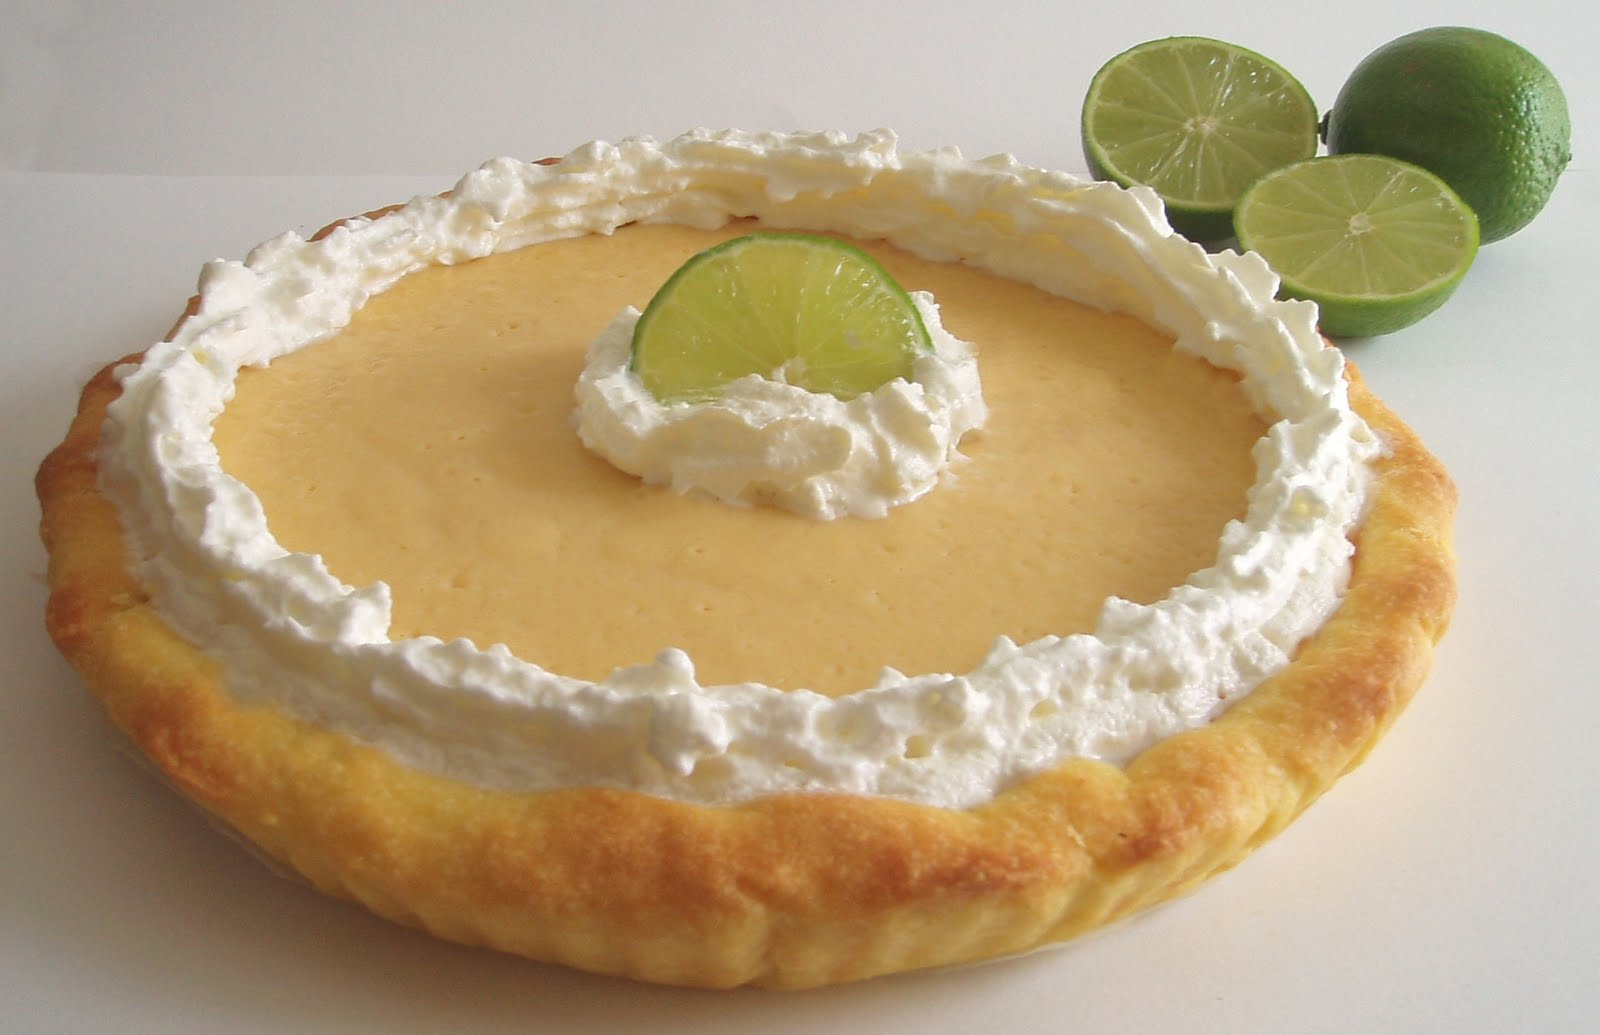 pie key lime pie key lime pie key lime pie vii key lime pie key lime ...